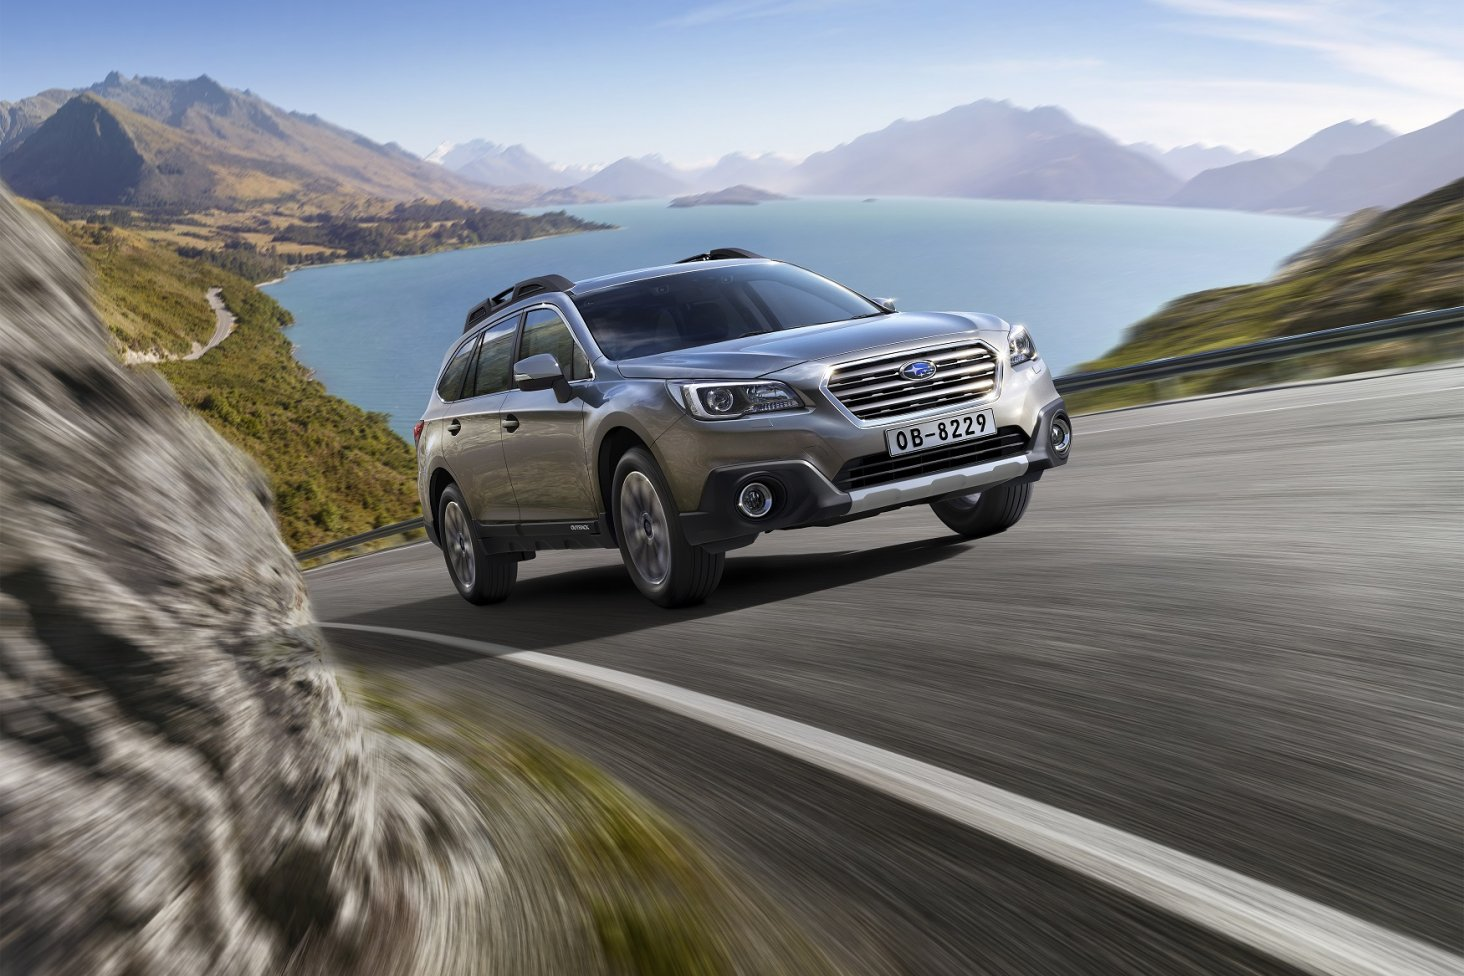 In 2017, Outback retained its status as the highest-selling Subaru model ever, with 1469 units sold – up 16% on 2016 and accounting for 44% of total Subaru sales.